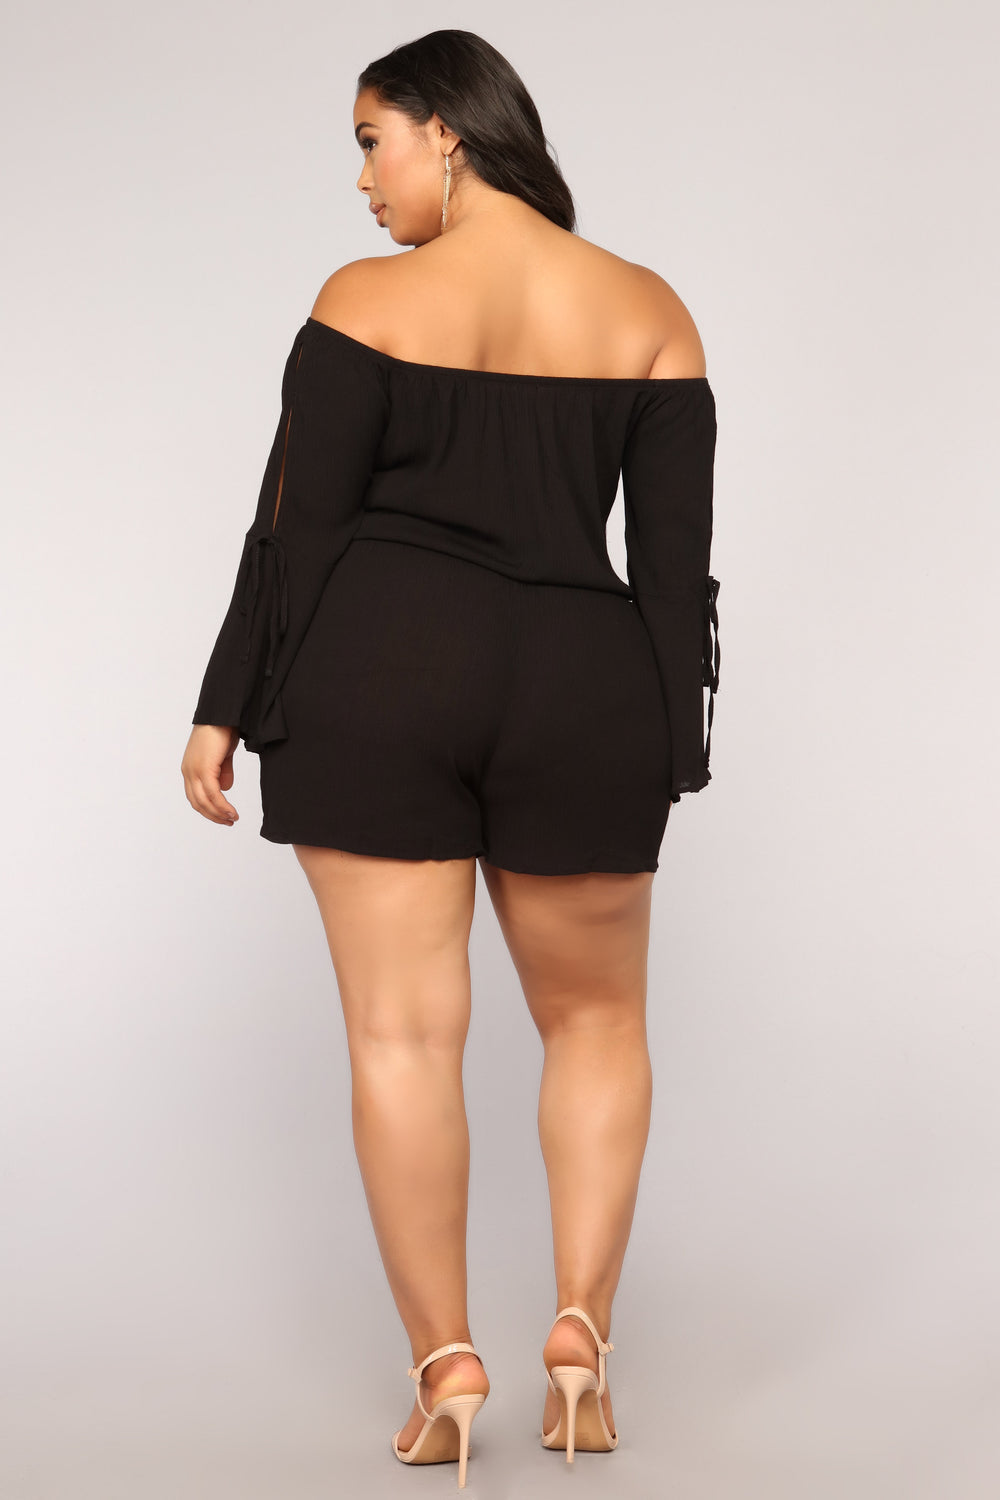 Maine Off Shoulder Romper II - Black